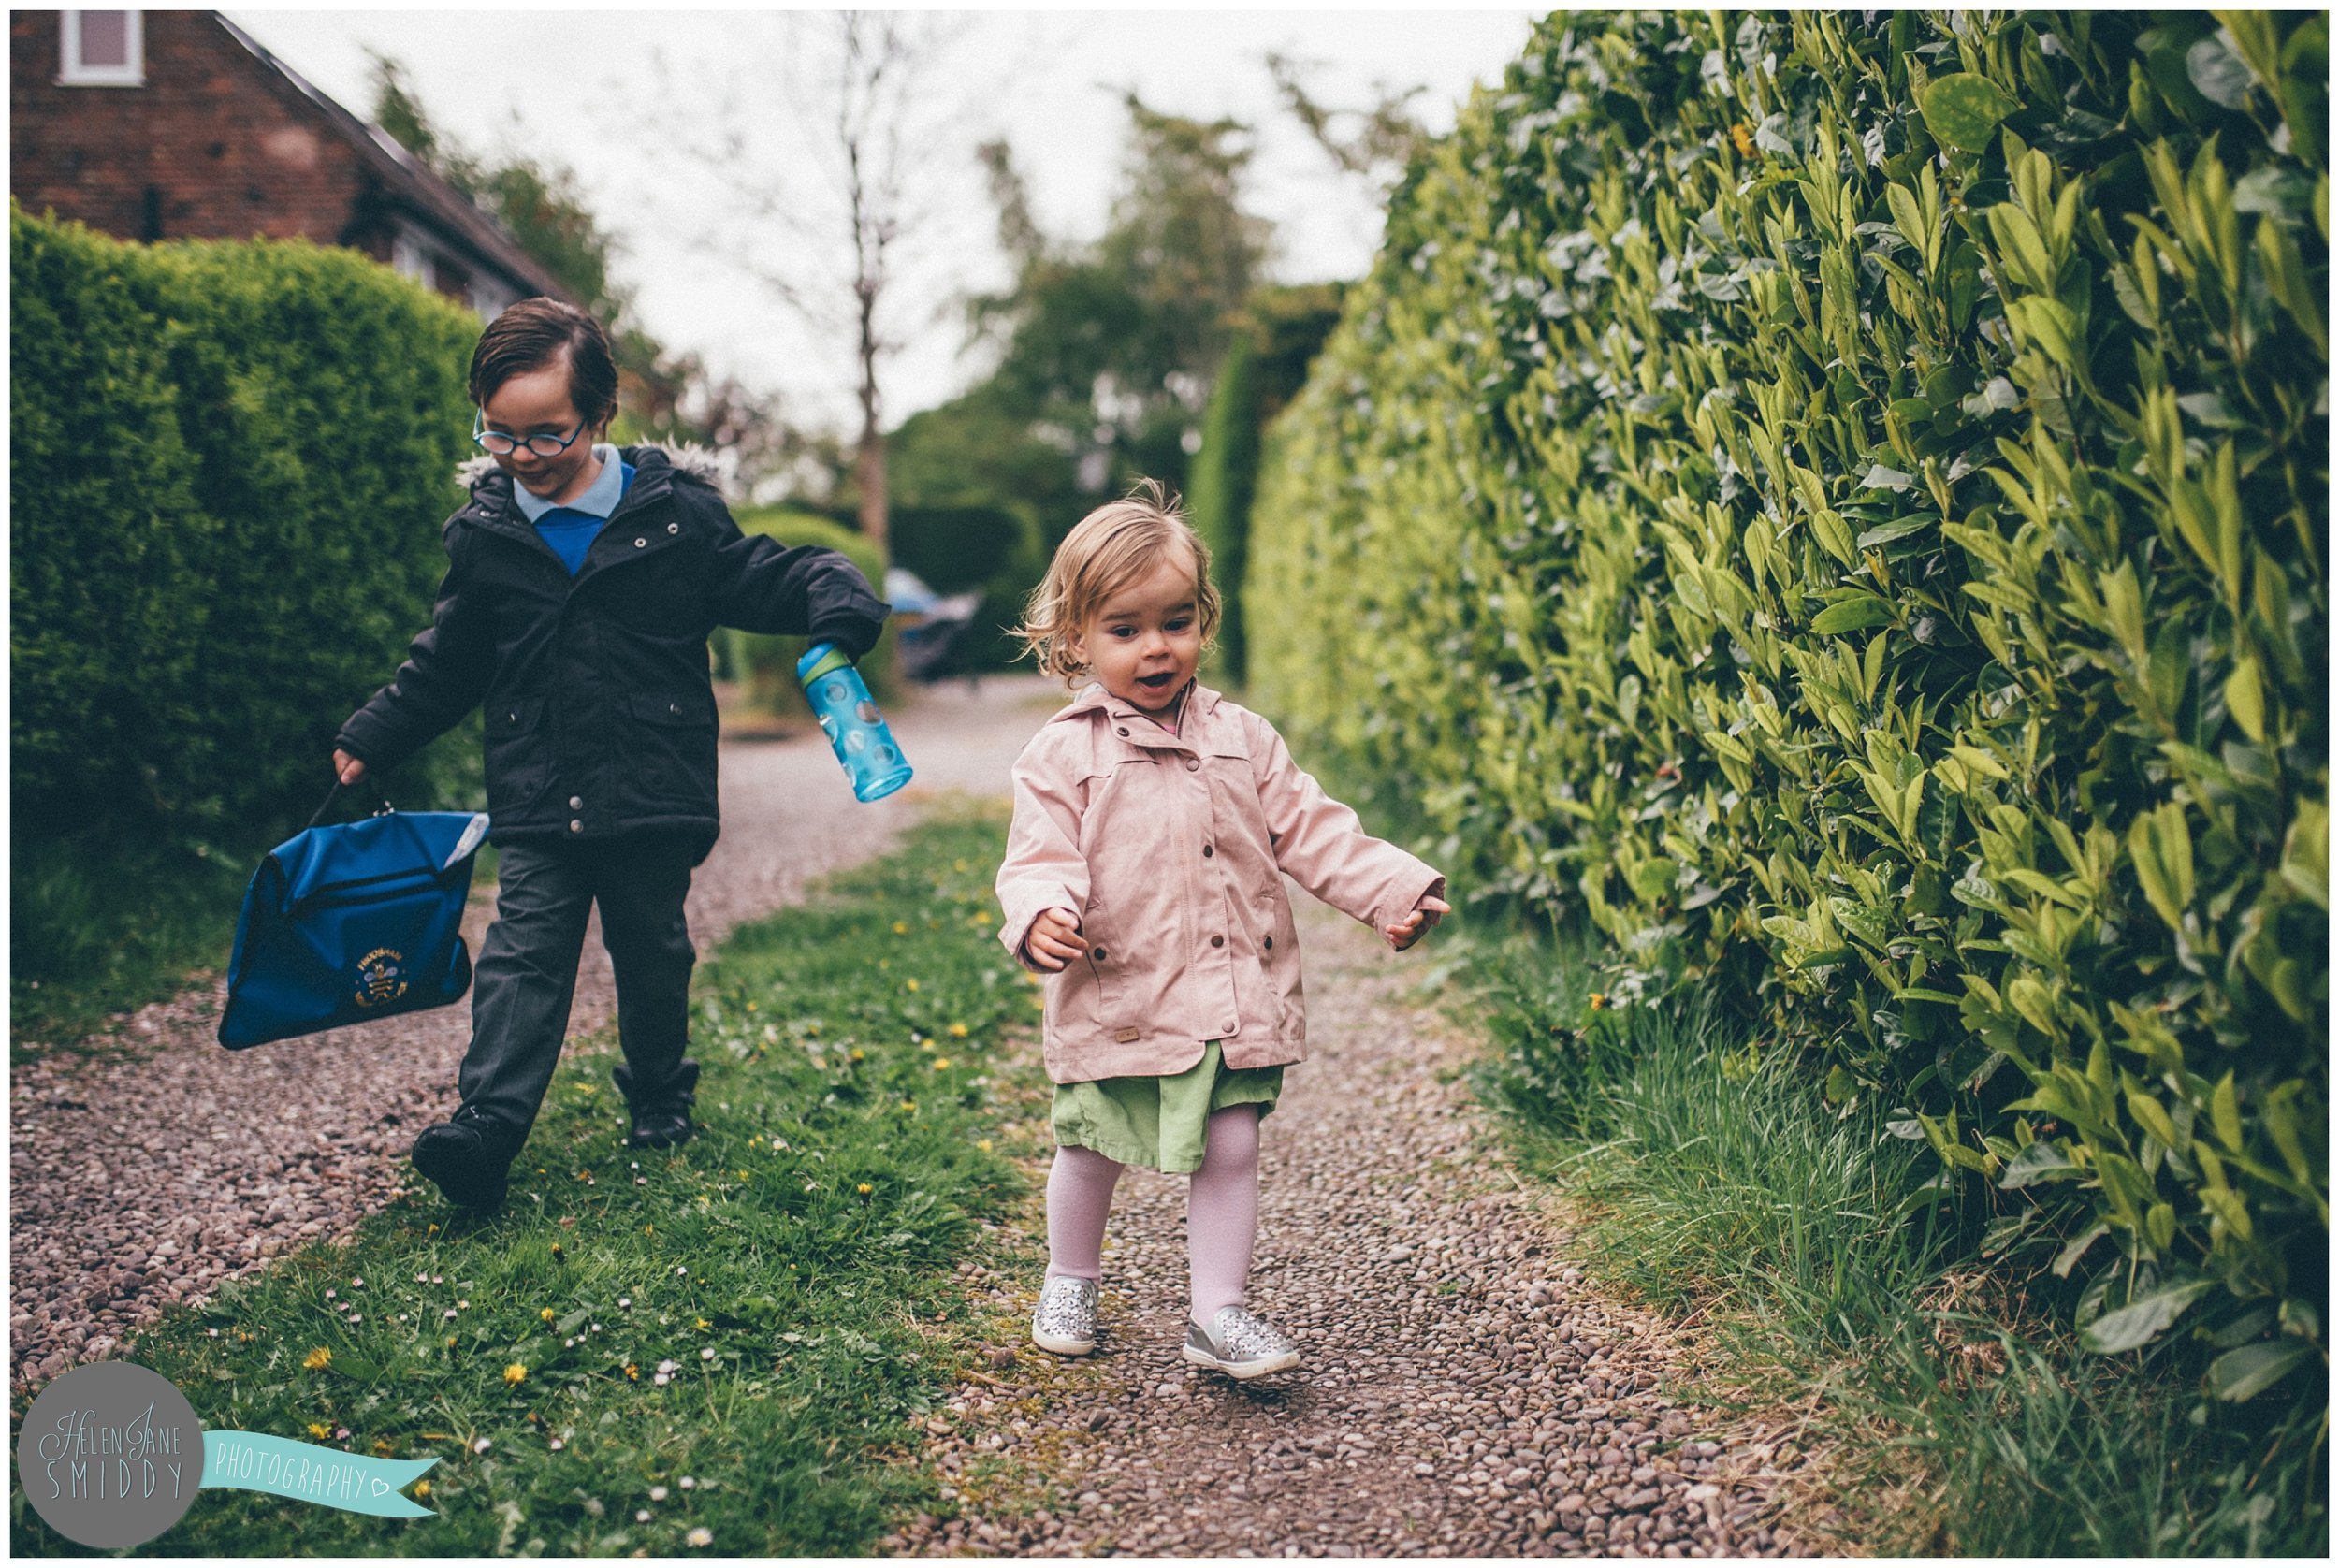 Brother and sister walking to school during A Day In The Life photoshoot in Frodsham, Cheshire.